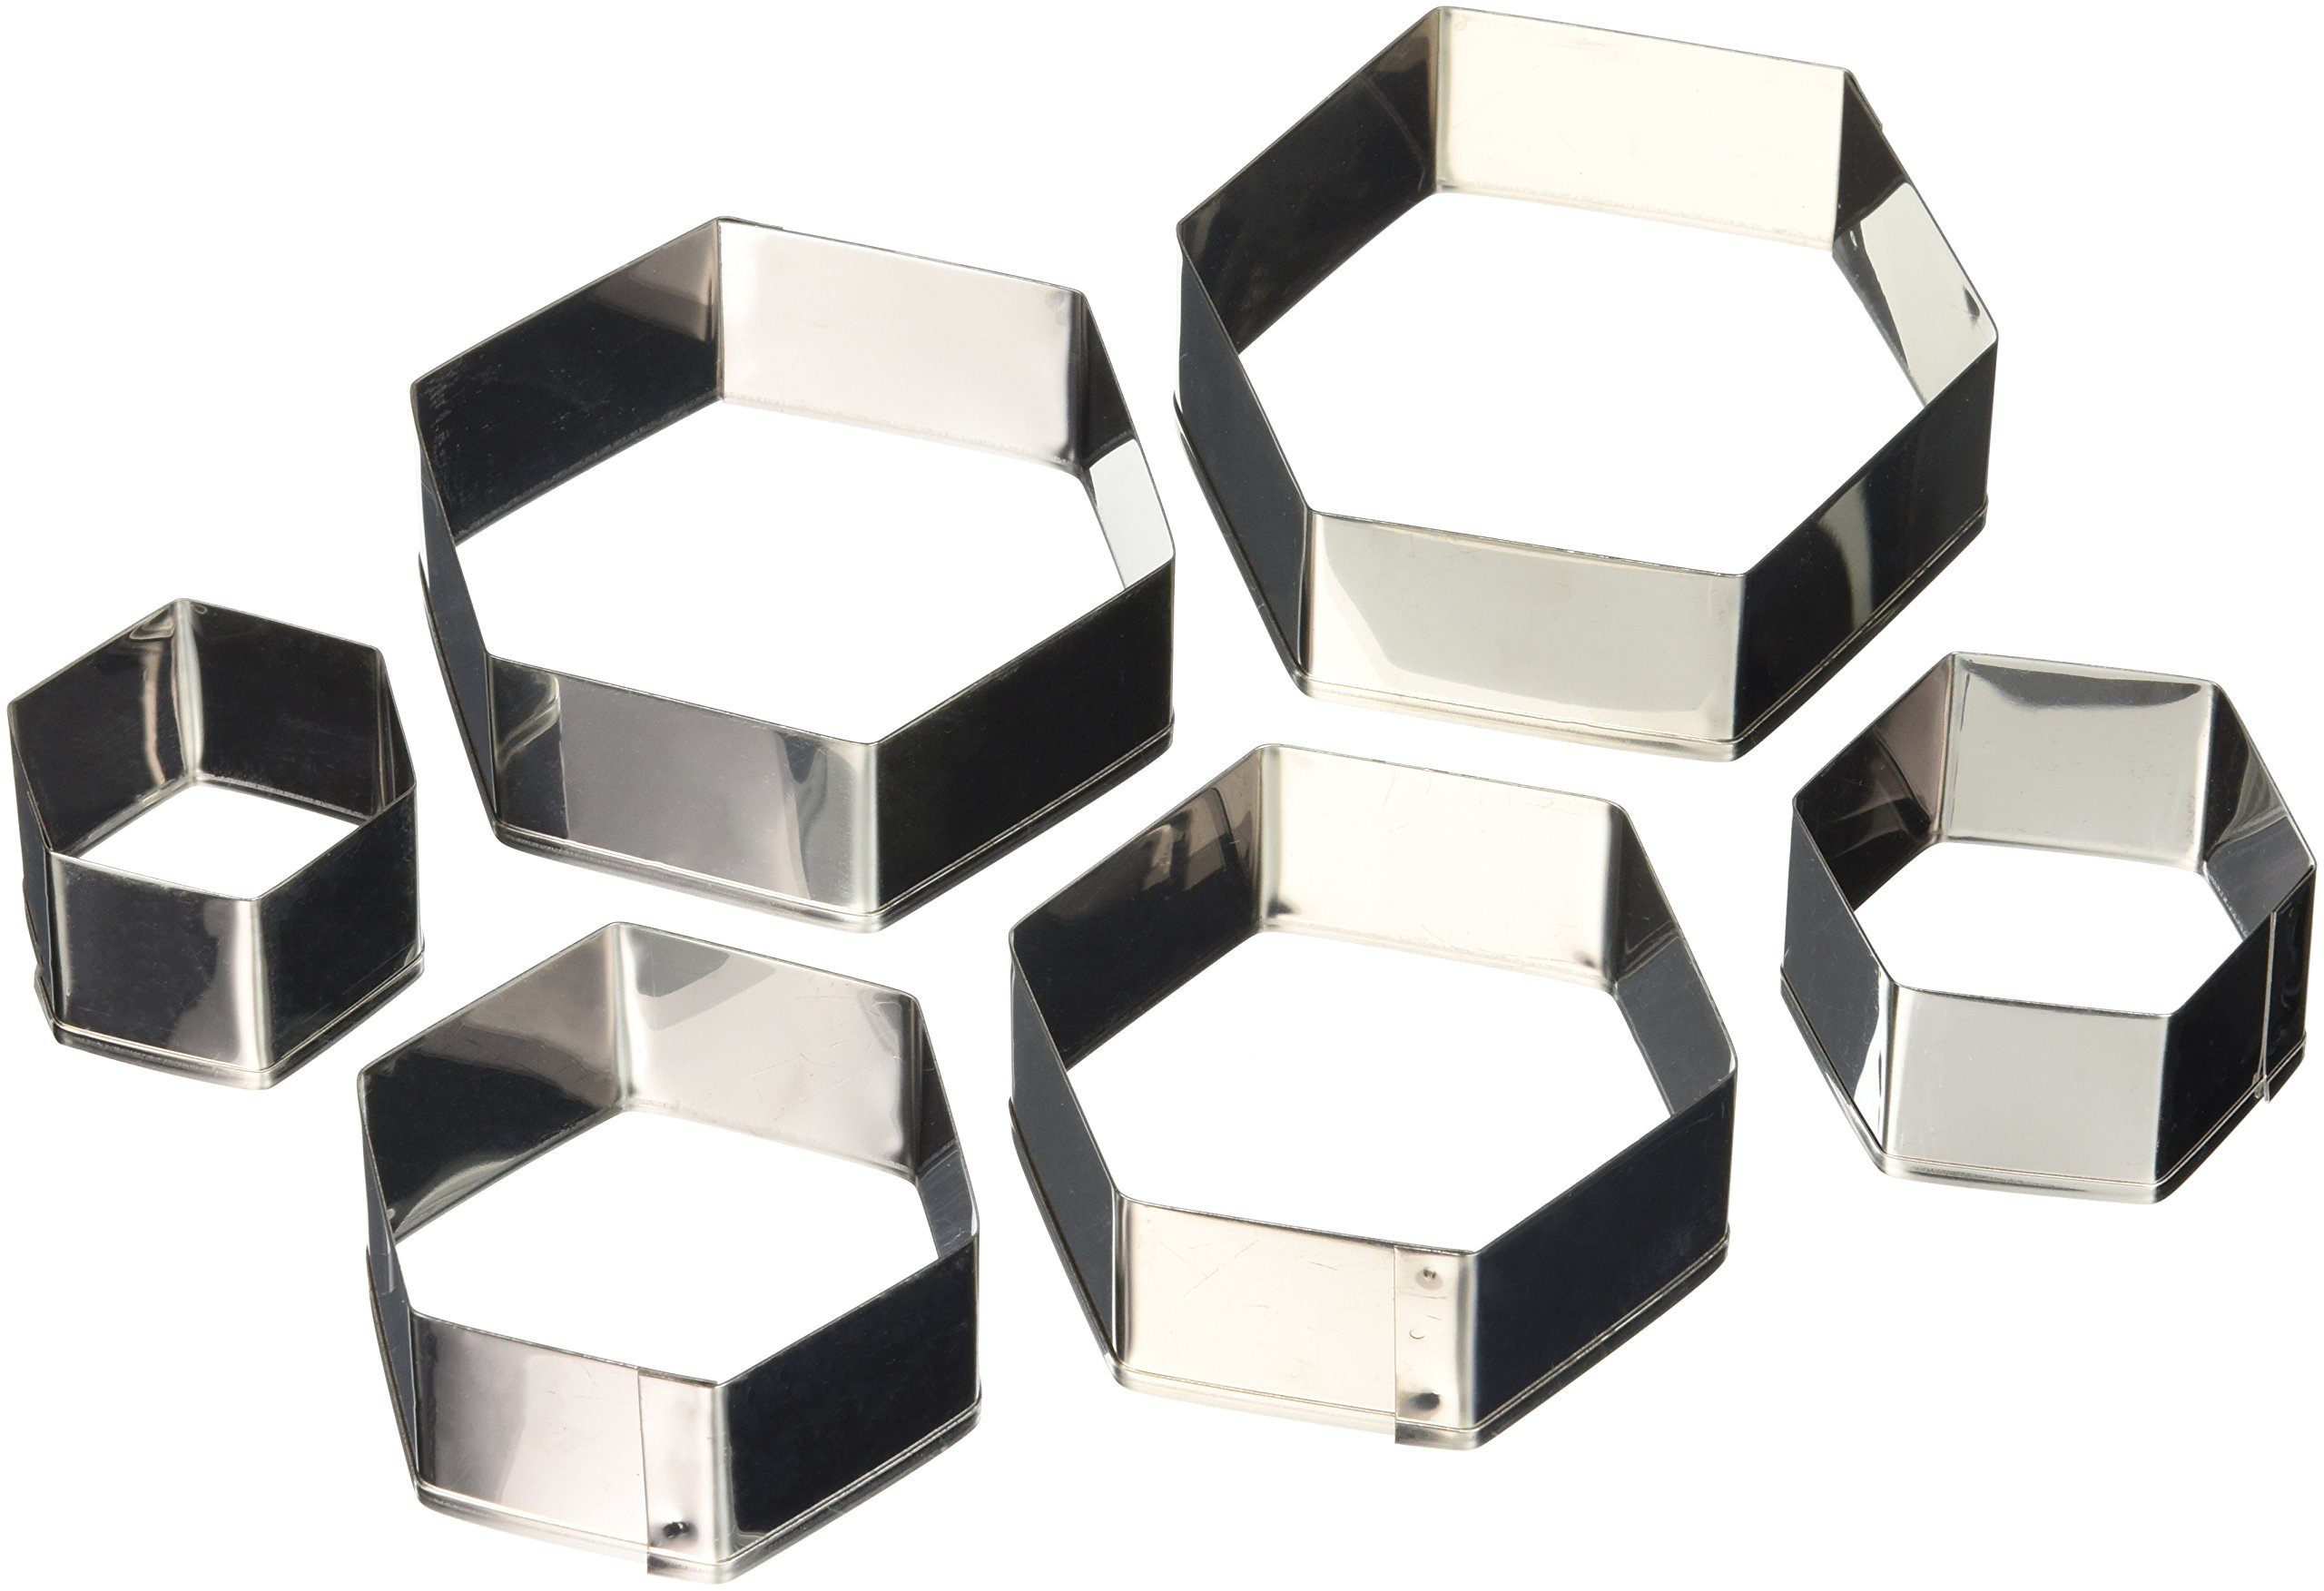 Ateco 5251 Plain Edge Hexagon Cutters in Graduated Sizes, Stainless Steel, 6 Pc Set